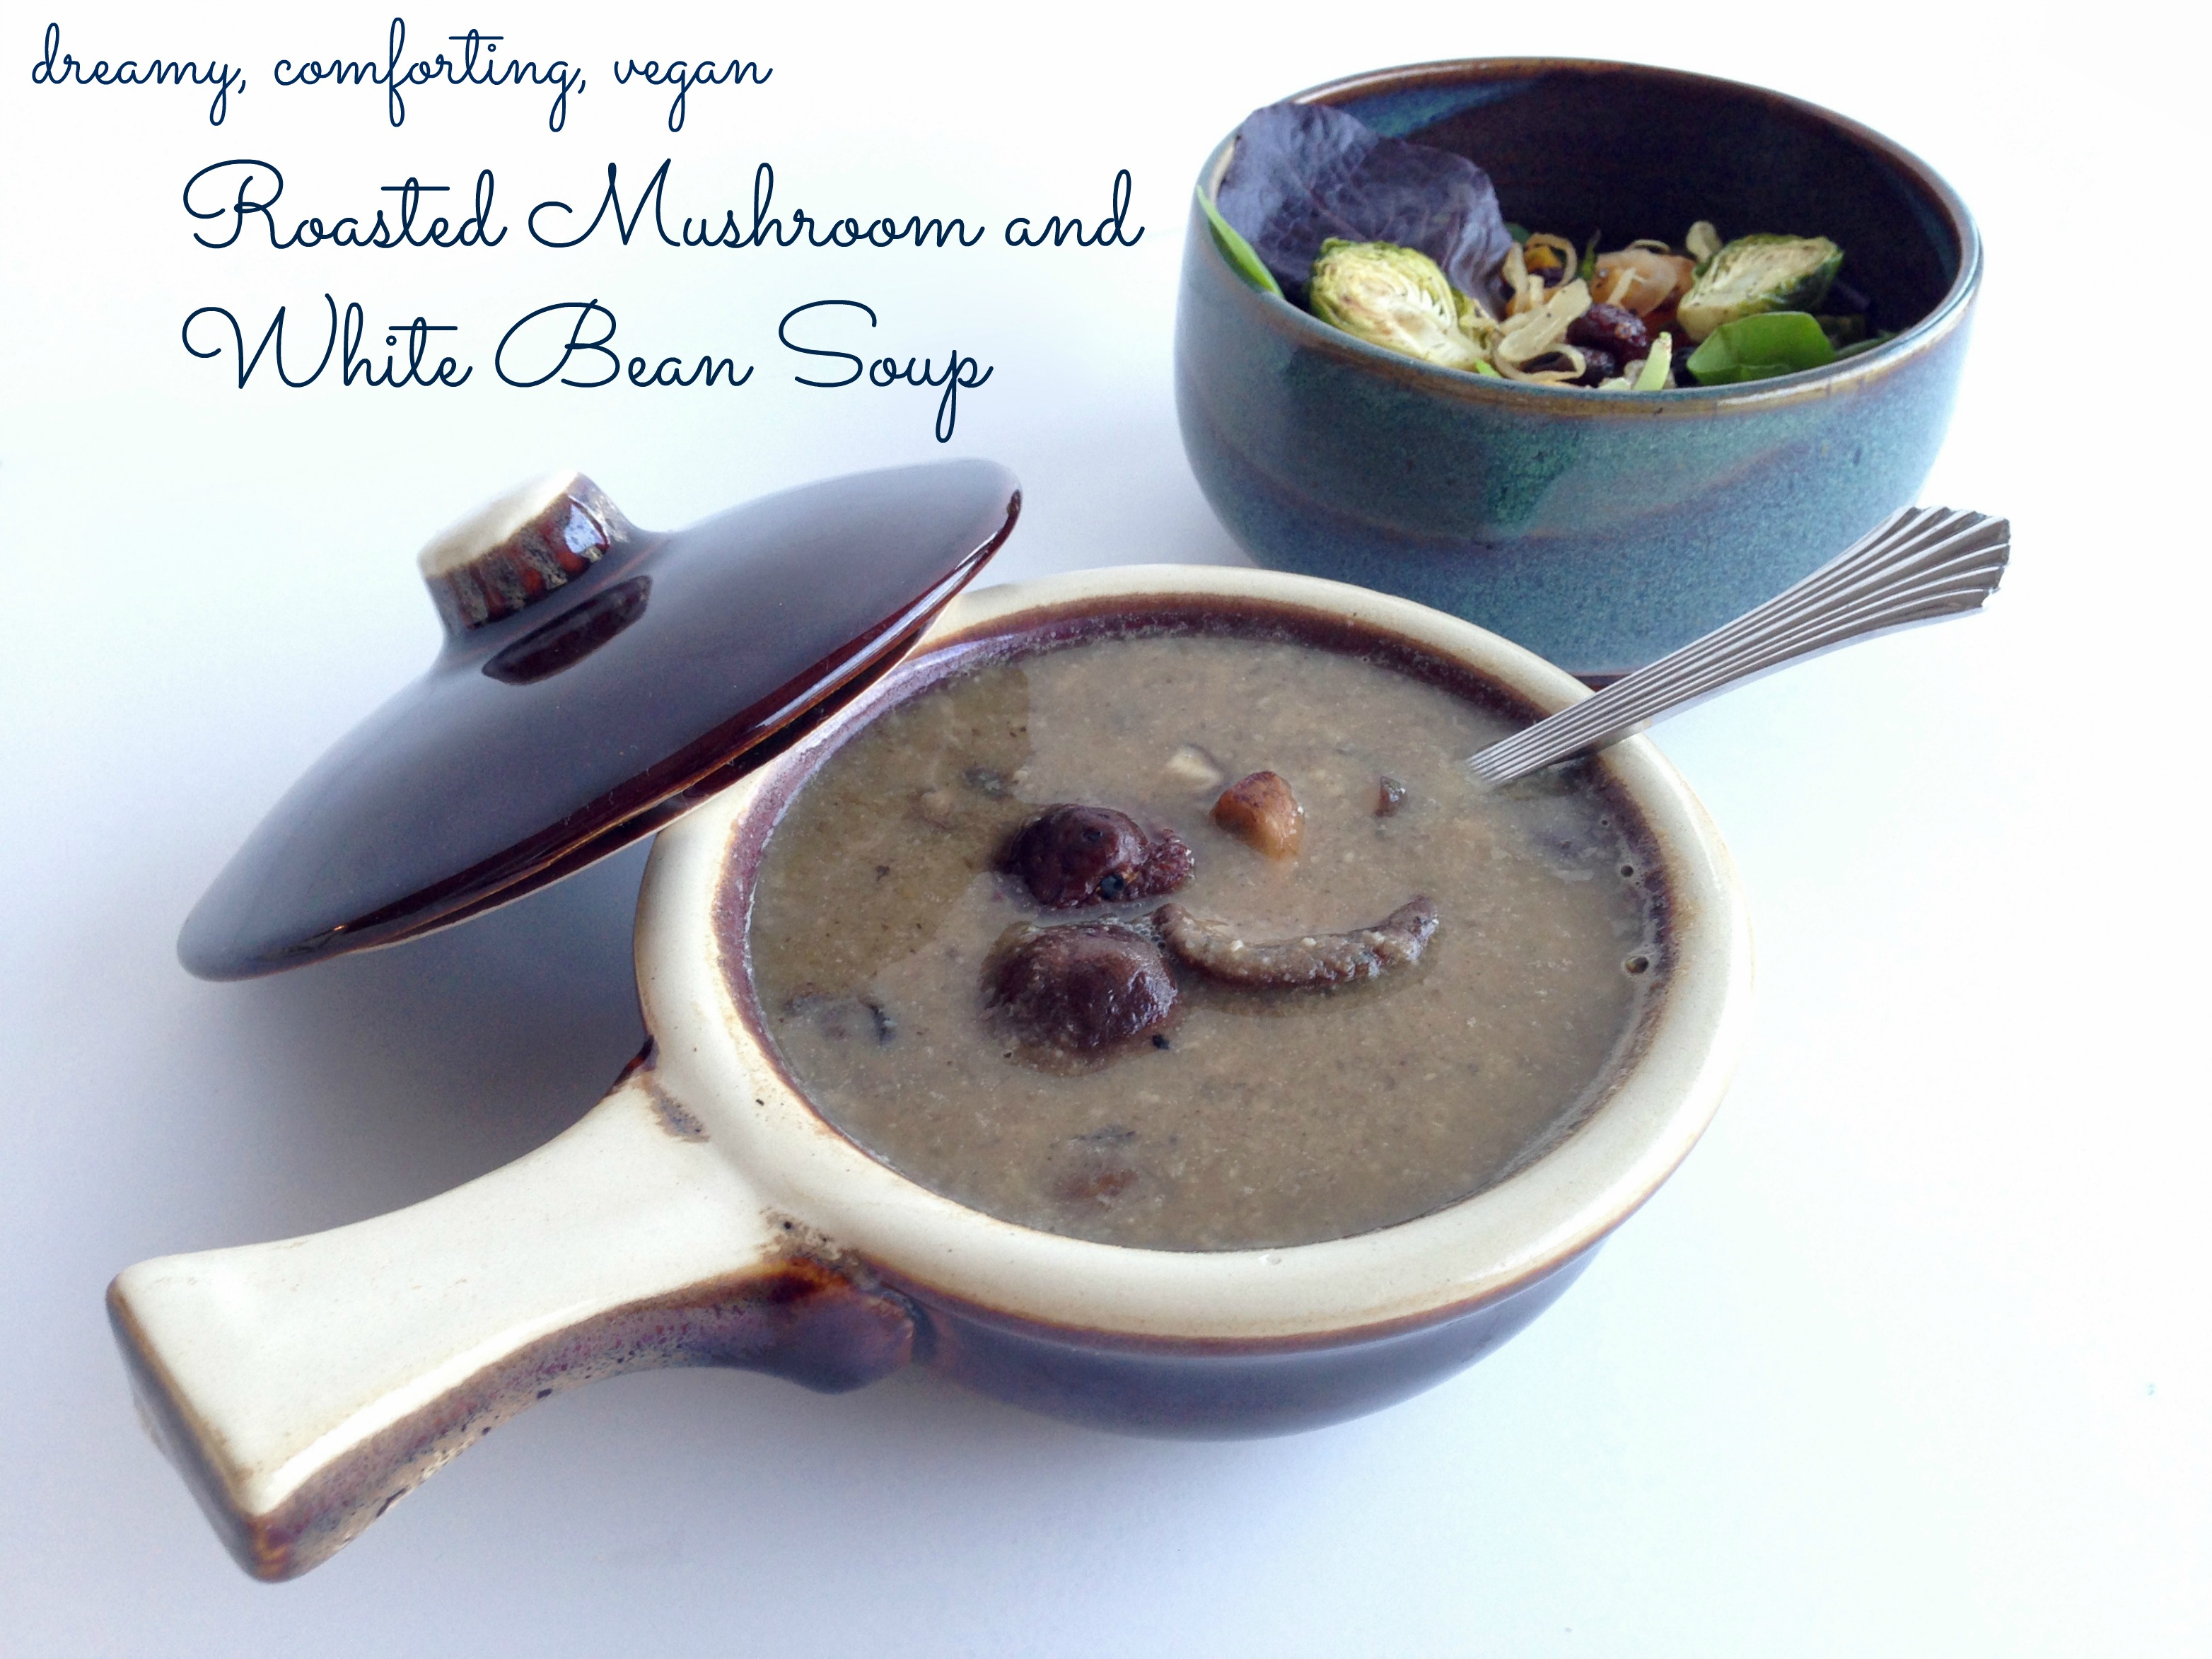 Vegan and Gluten free roasted mushroom and white bean soup with truffle oil shiitake and portobello mushrooms